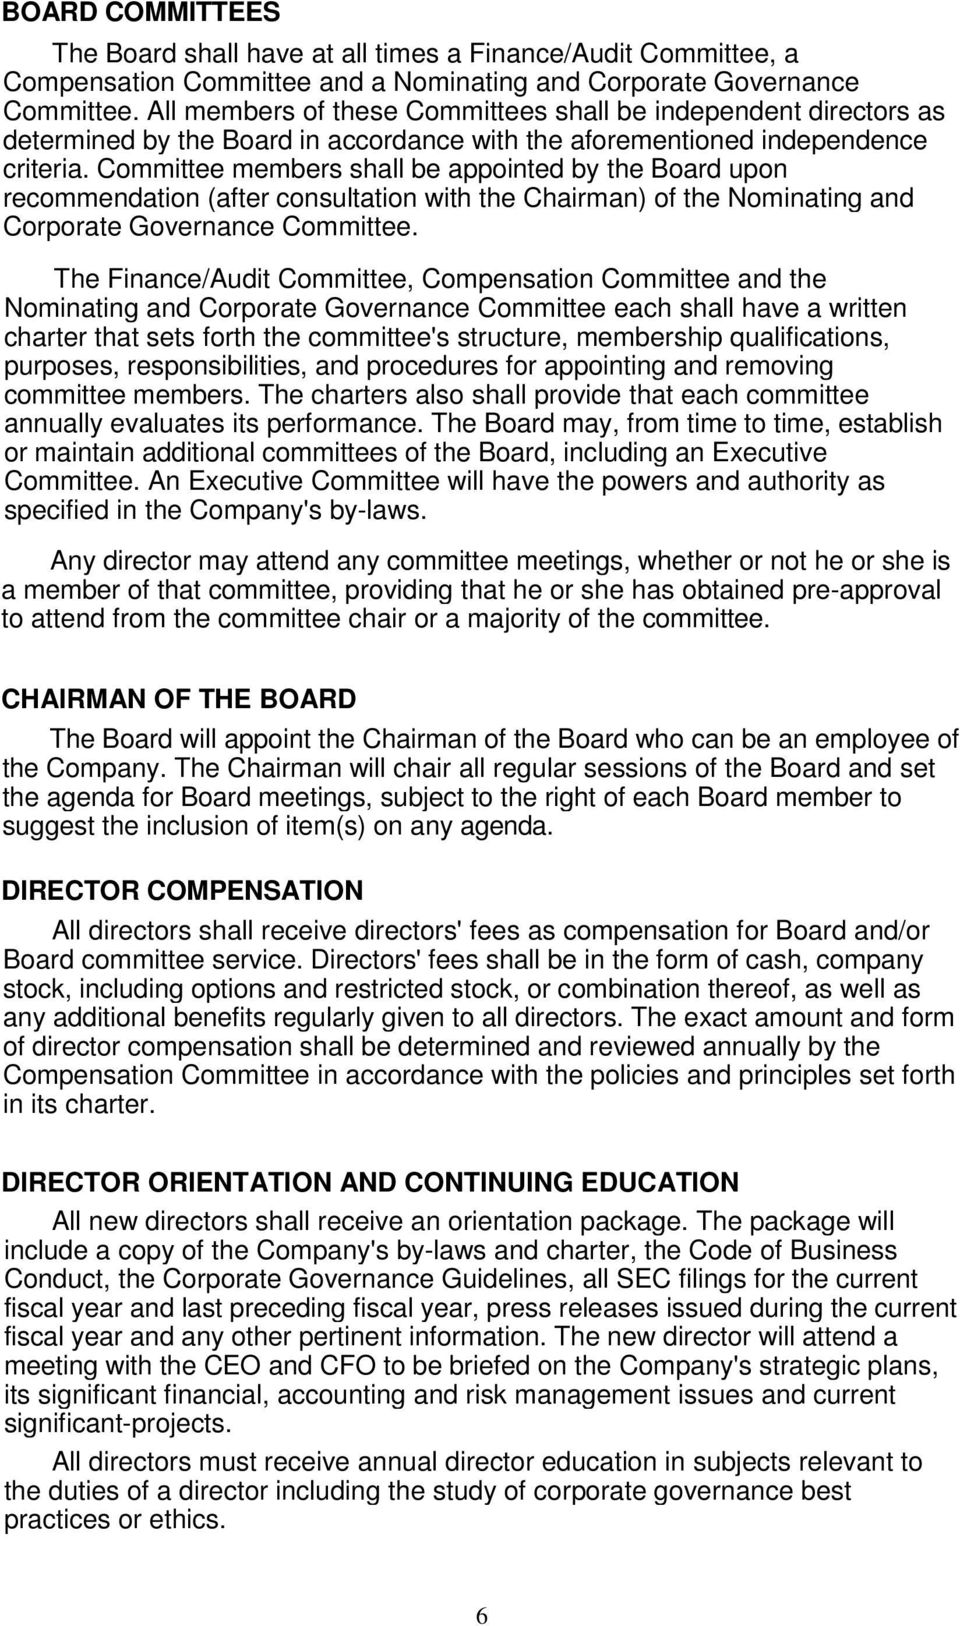 Committee members shall be appointed by the Board upon recommendation (after consultation with the Chairman) of the Nominating and Corporate Governance Committee.